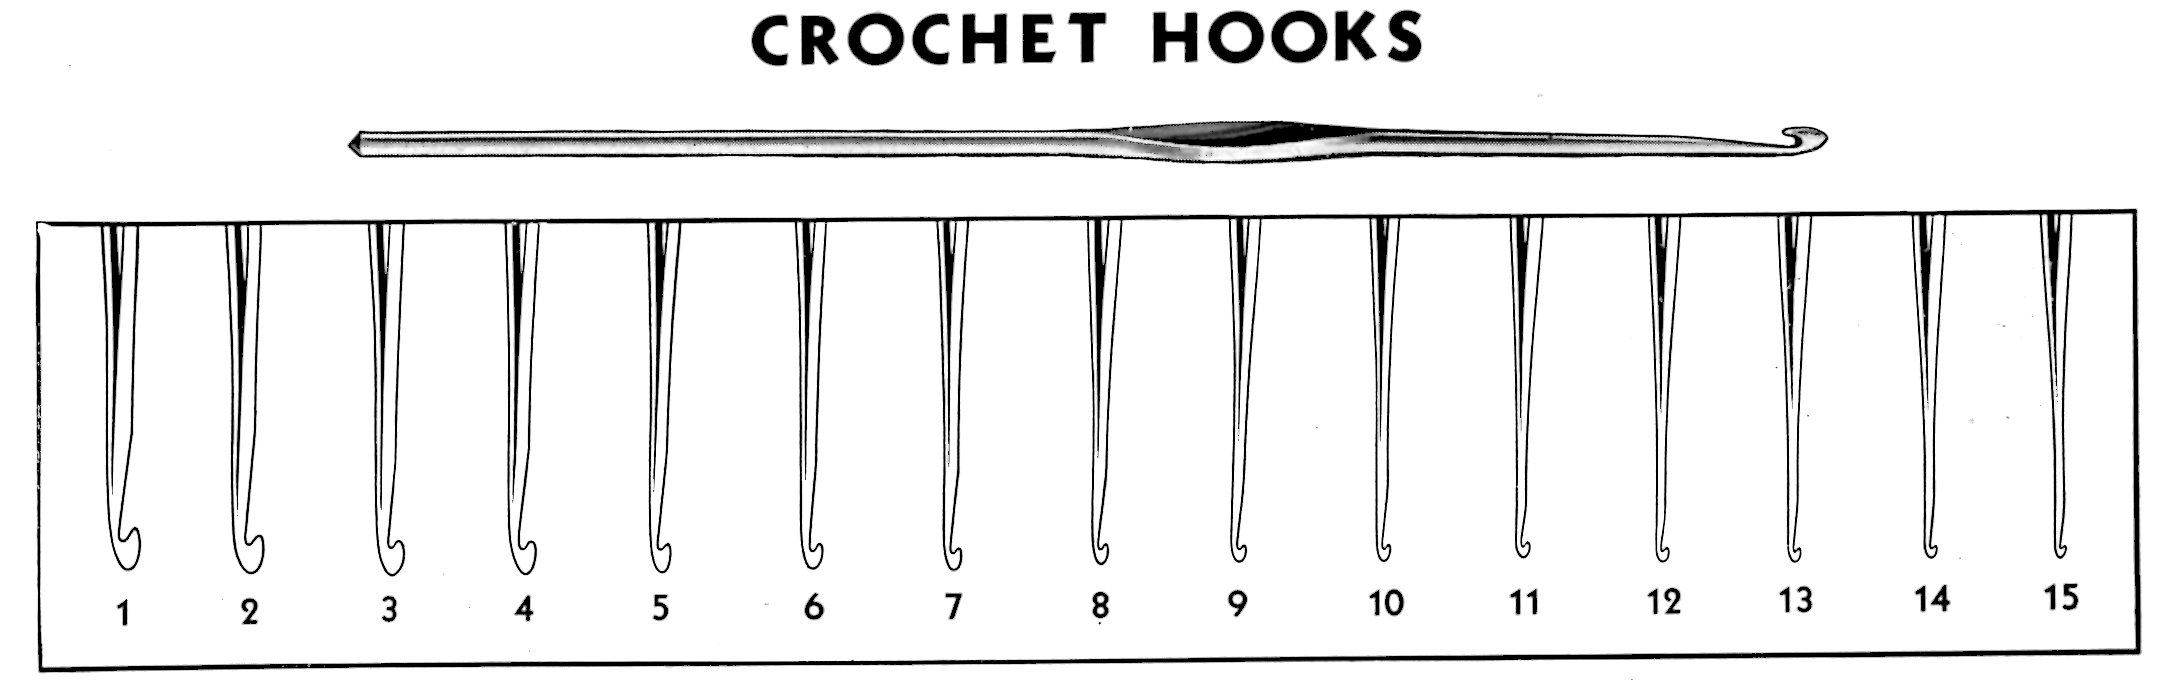 Crocheting Needle Sizes : Crochet Hook Size Chart Car Interior Design